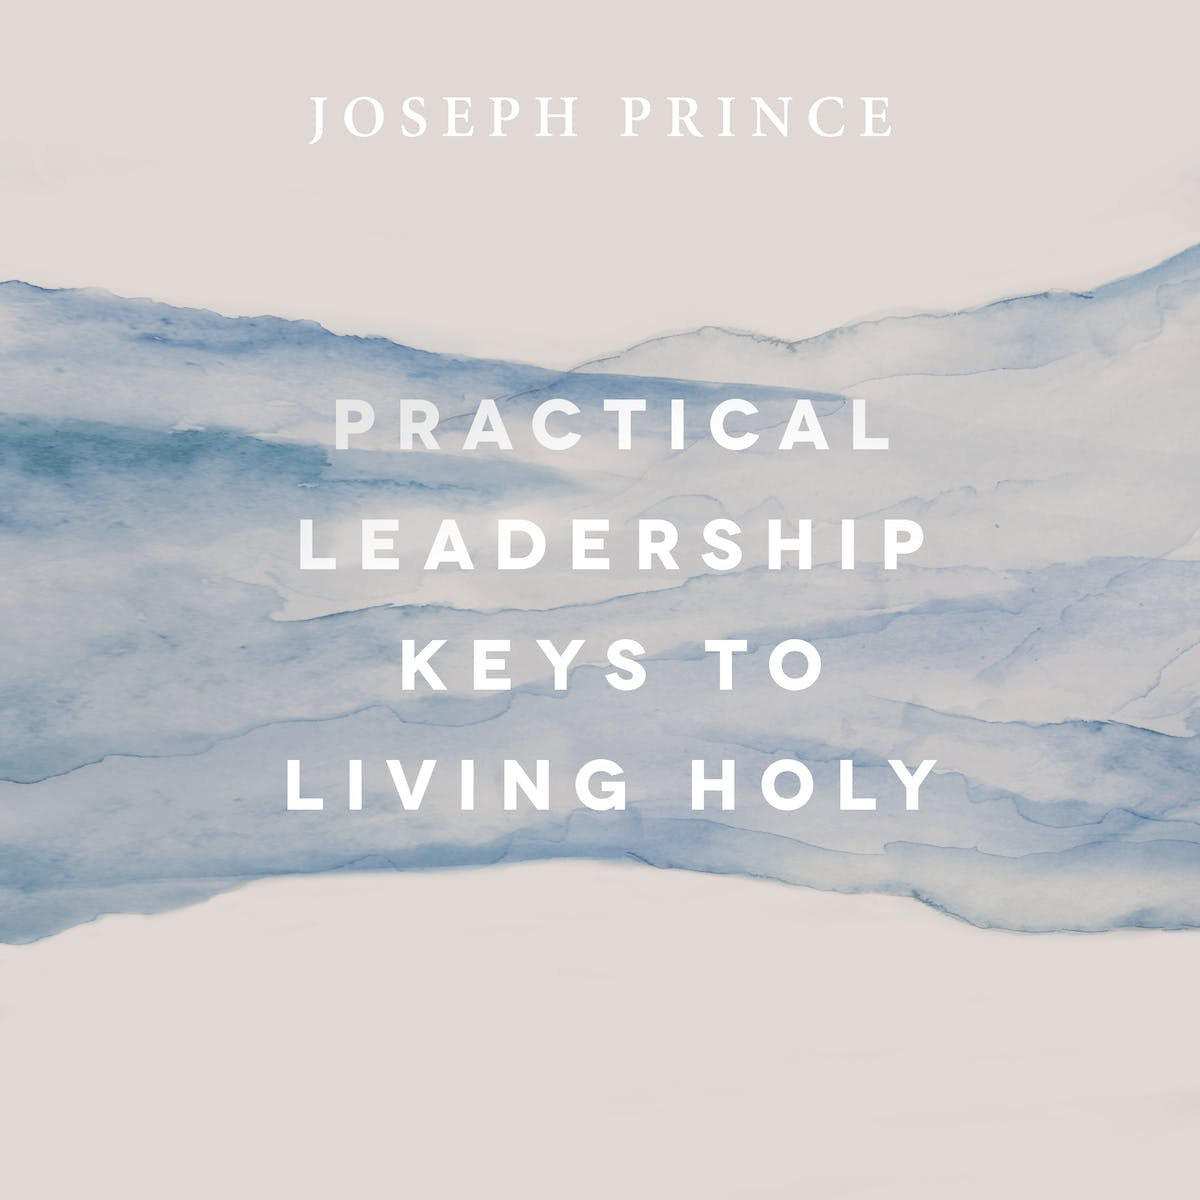 Practical Leadership Keys To Living Holy | Official Joseph Prince